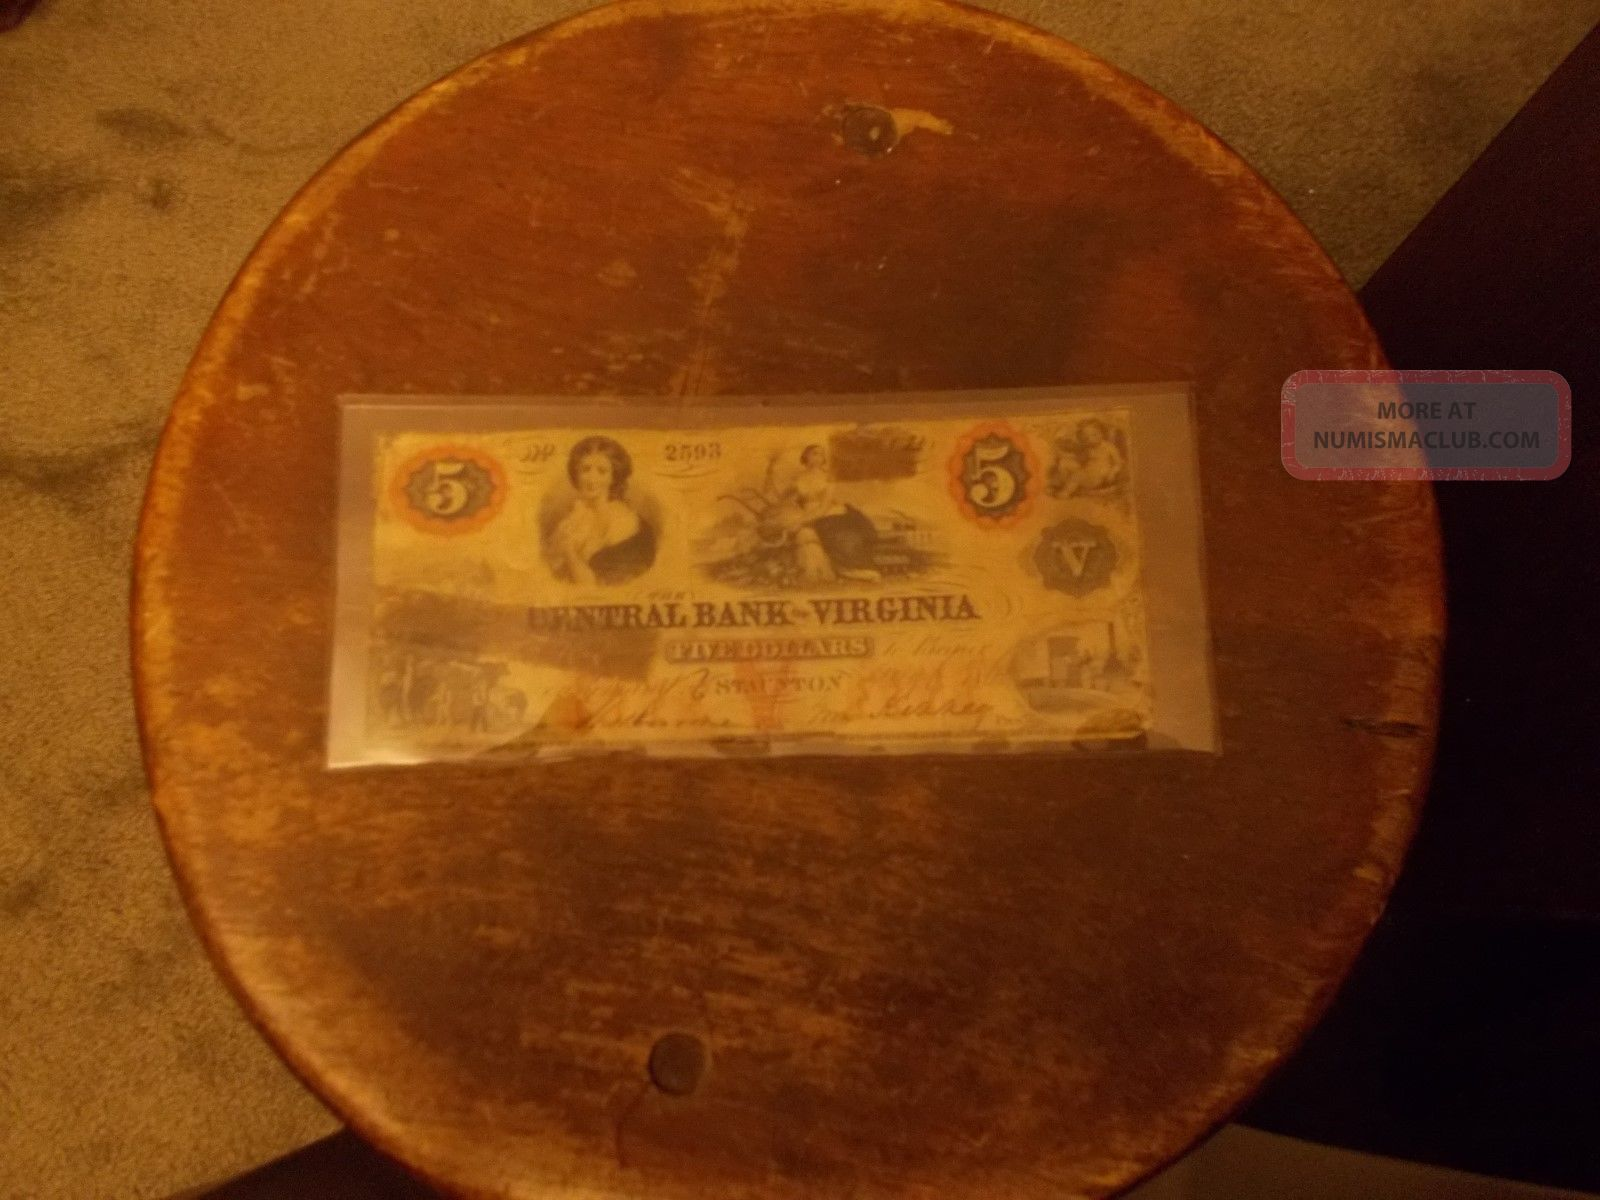 Central Bank Of Virginia Five Dollar Bill 1860 Stocks & Bonds, Scripophily photo